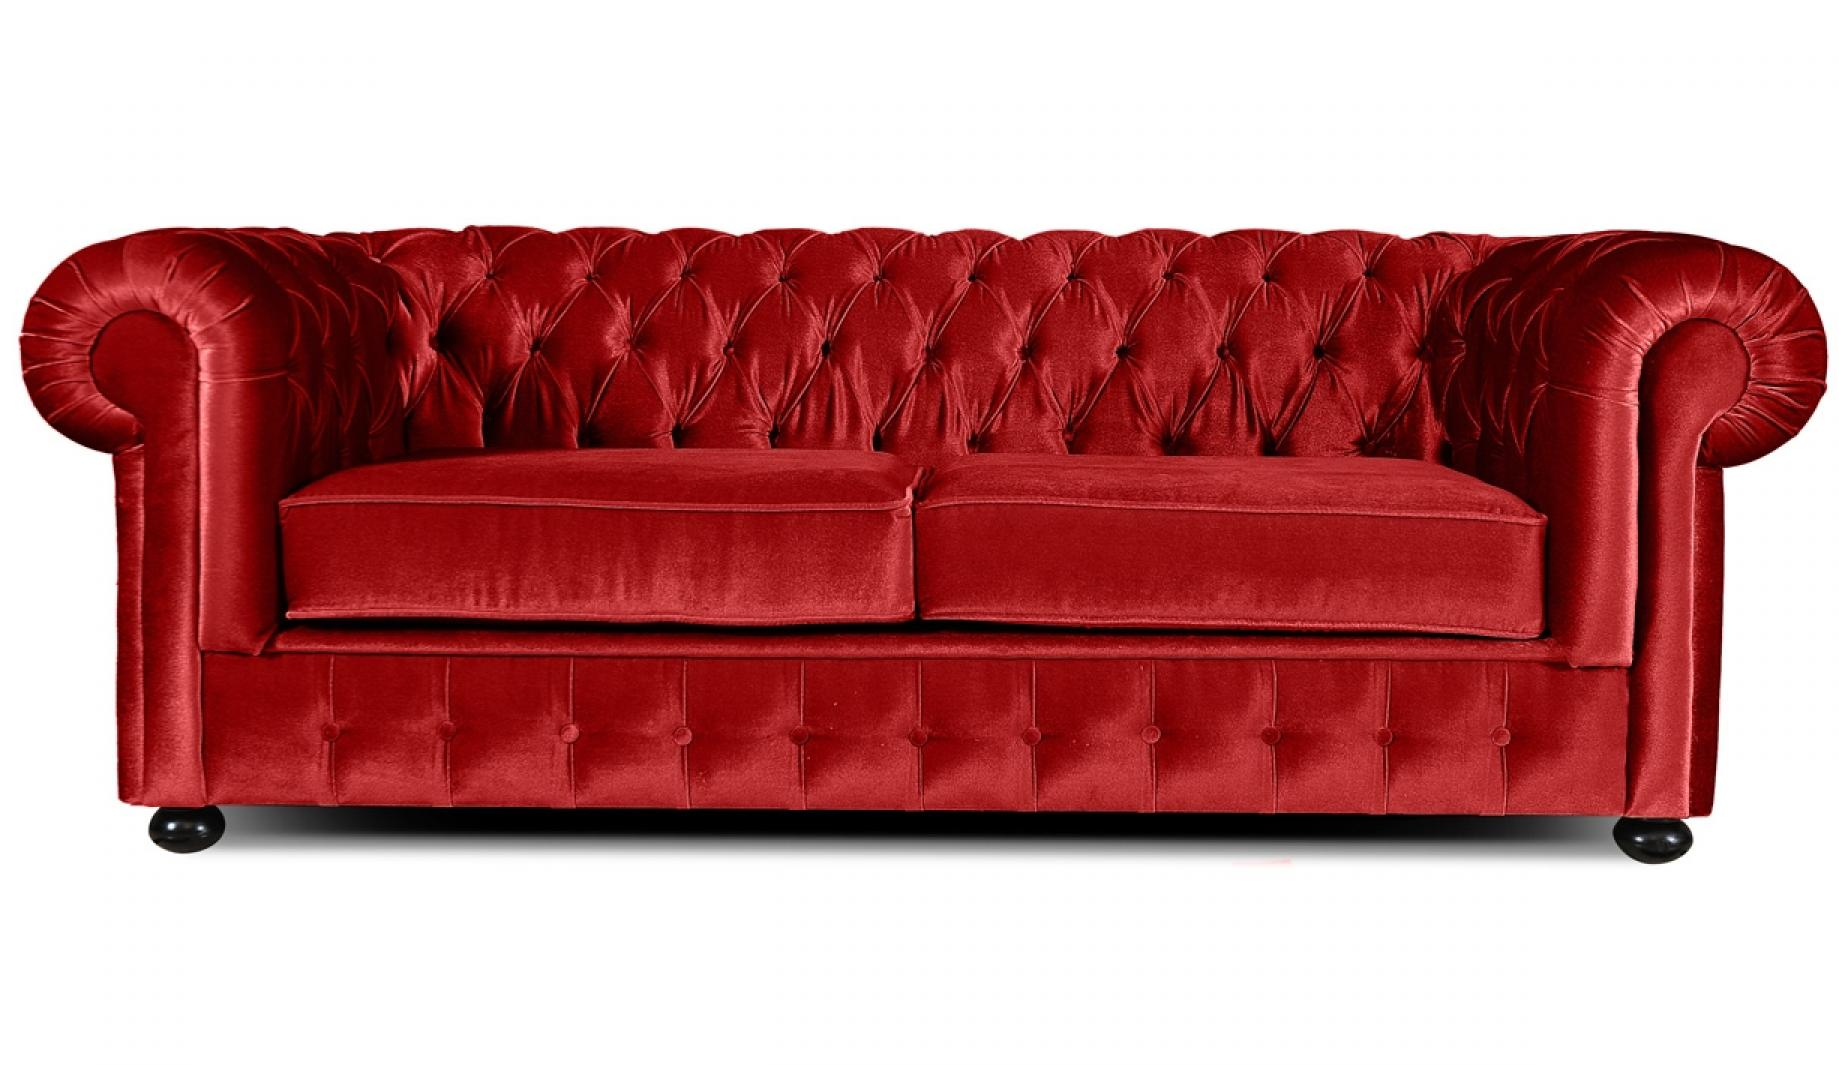 Canape chesterfield velours - Chesterfield convertible occasion ...